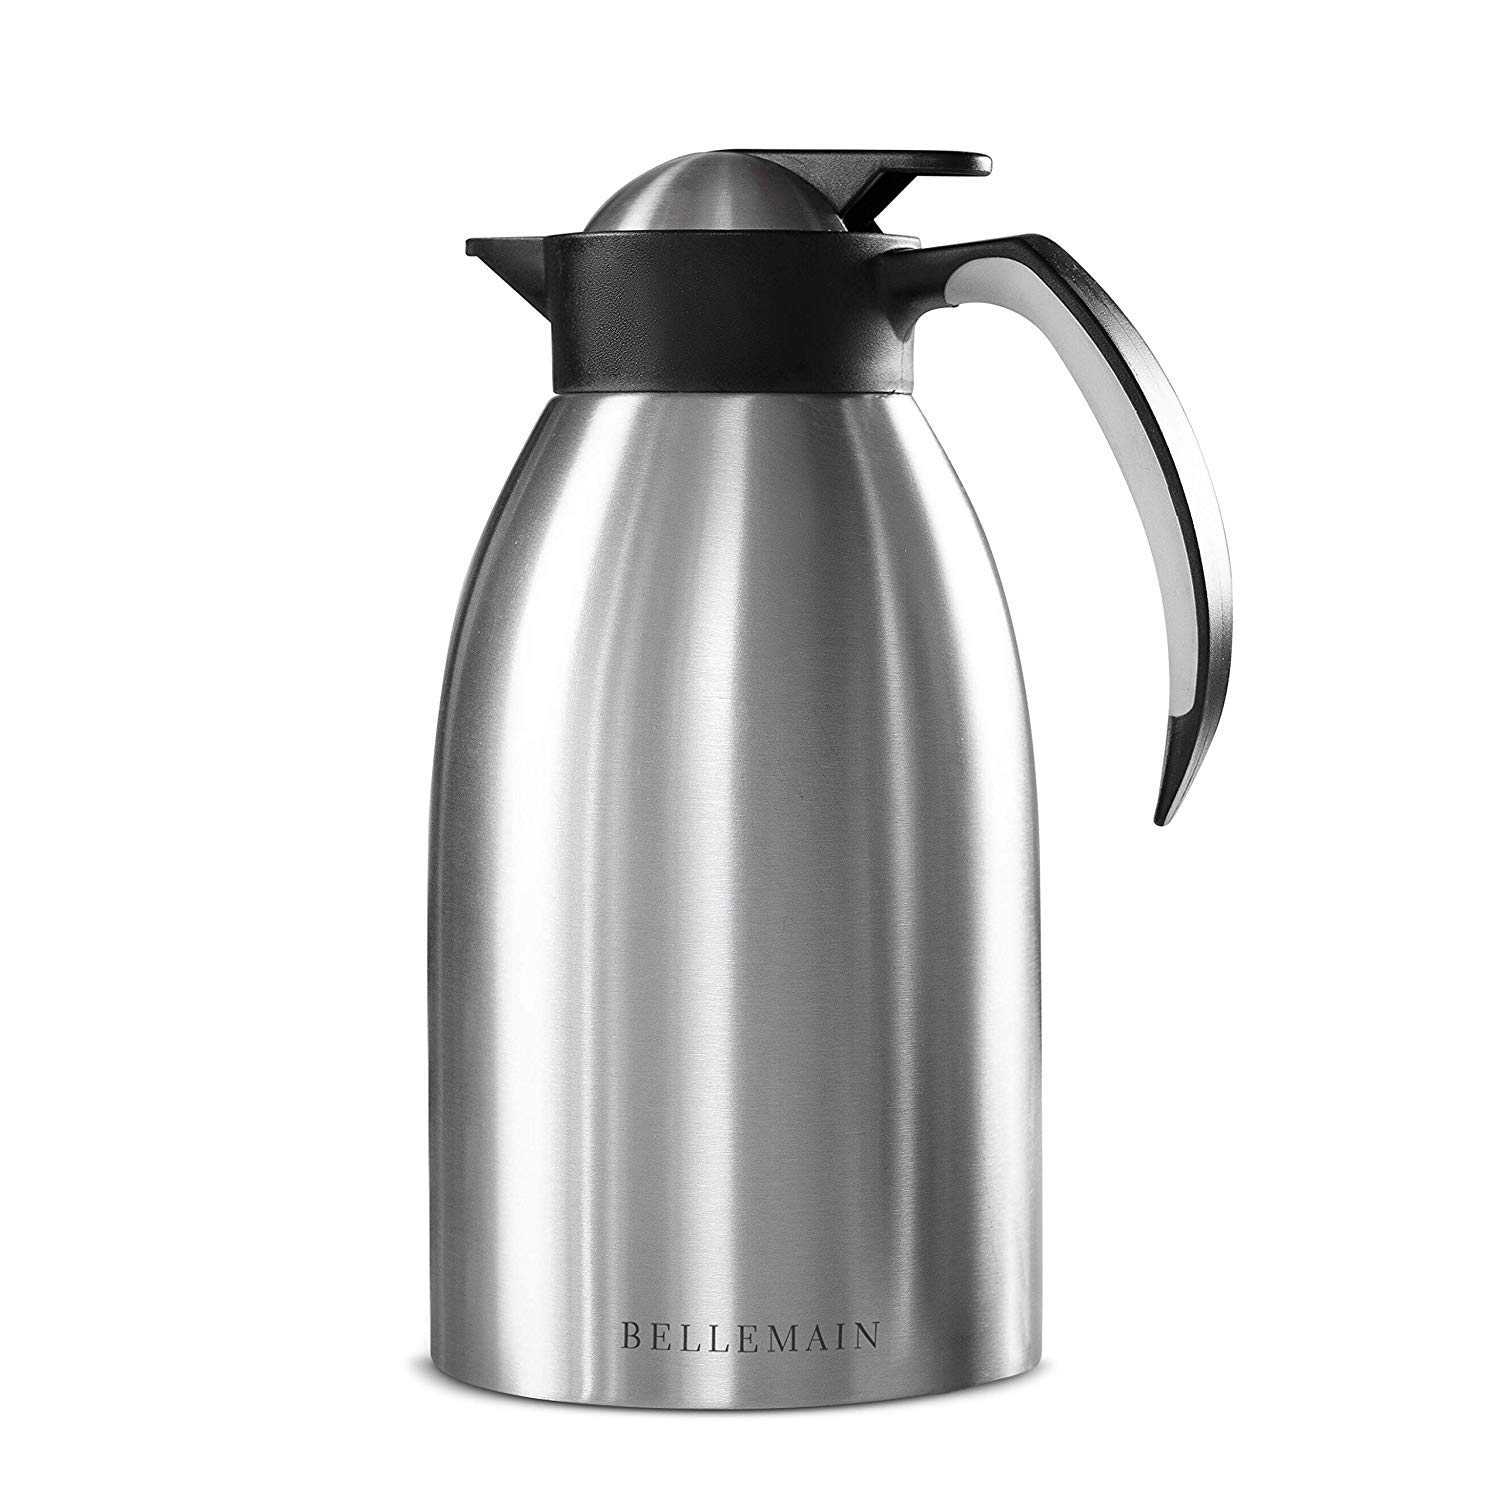 Bellemain Premium Thermal Coffee Carafe Stainless Steel 2 Liter /8 cup Double wall insulated vacuum carafe by Bellemain